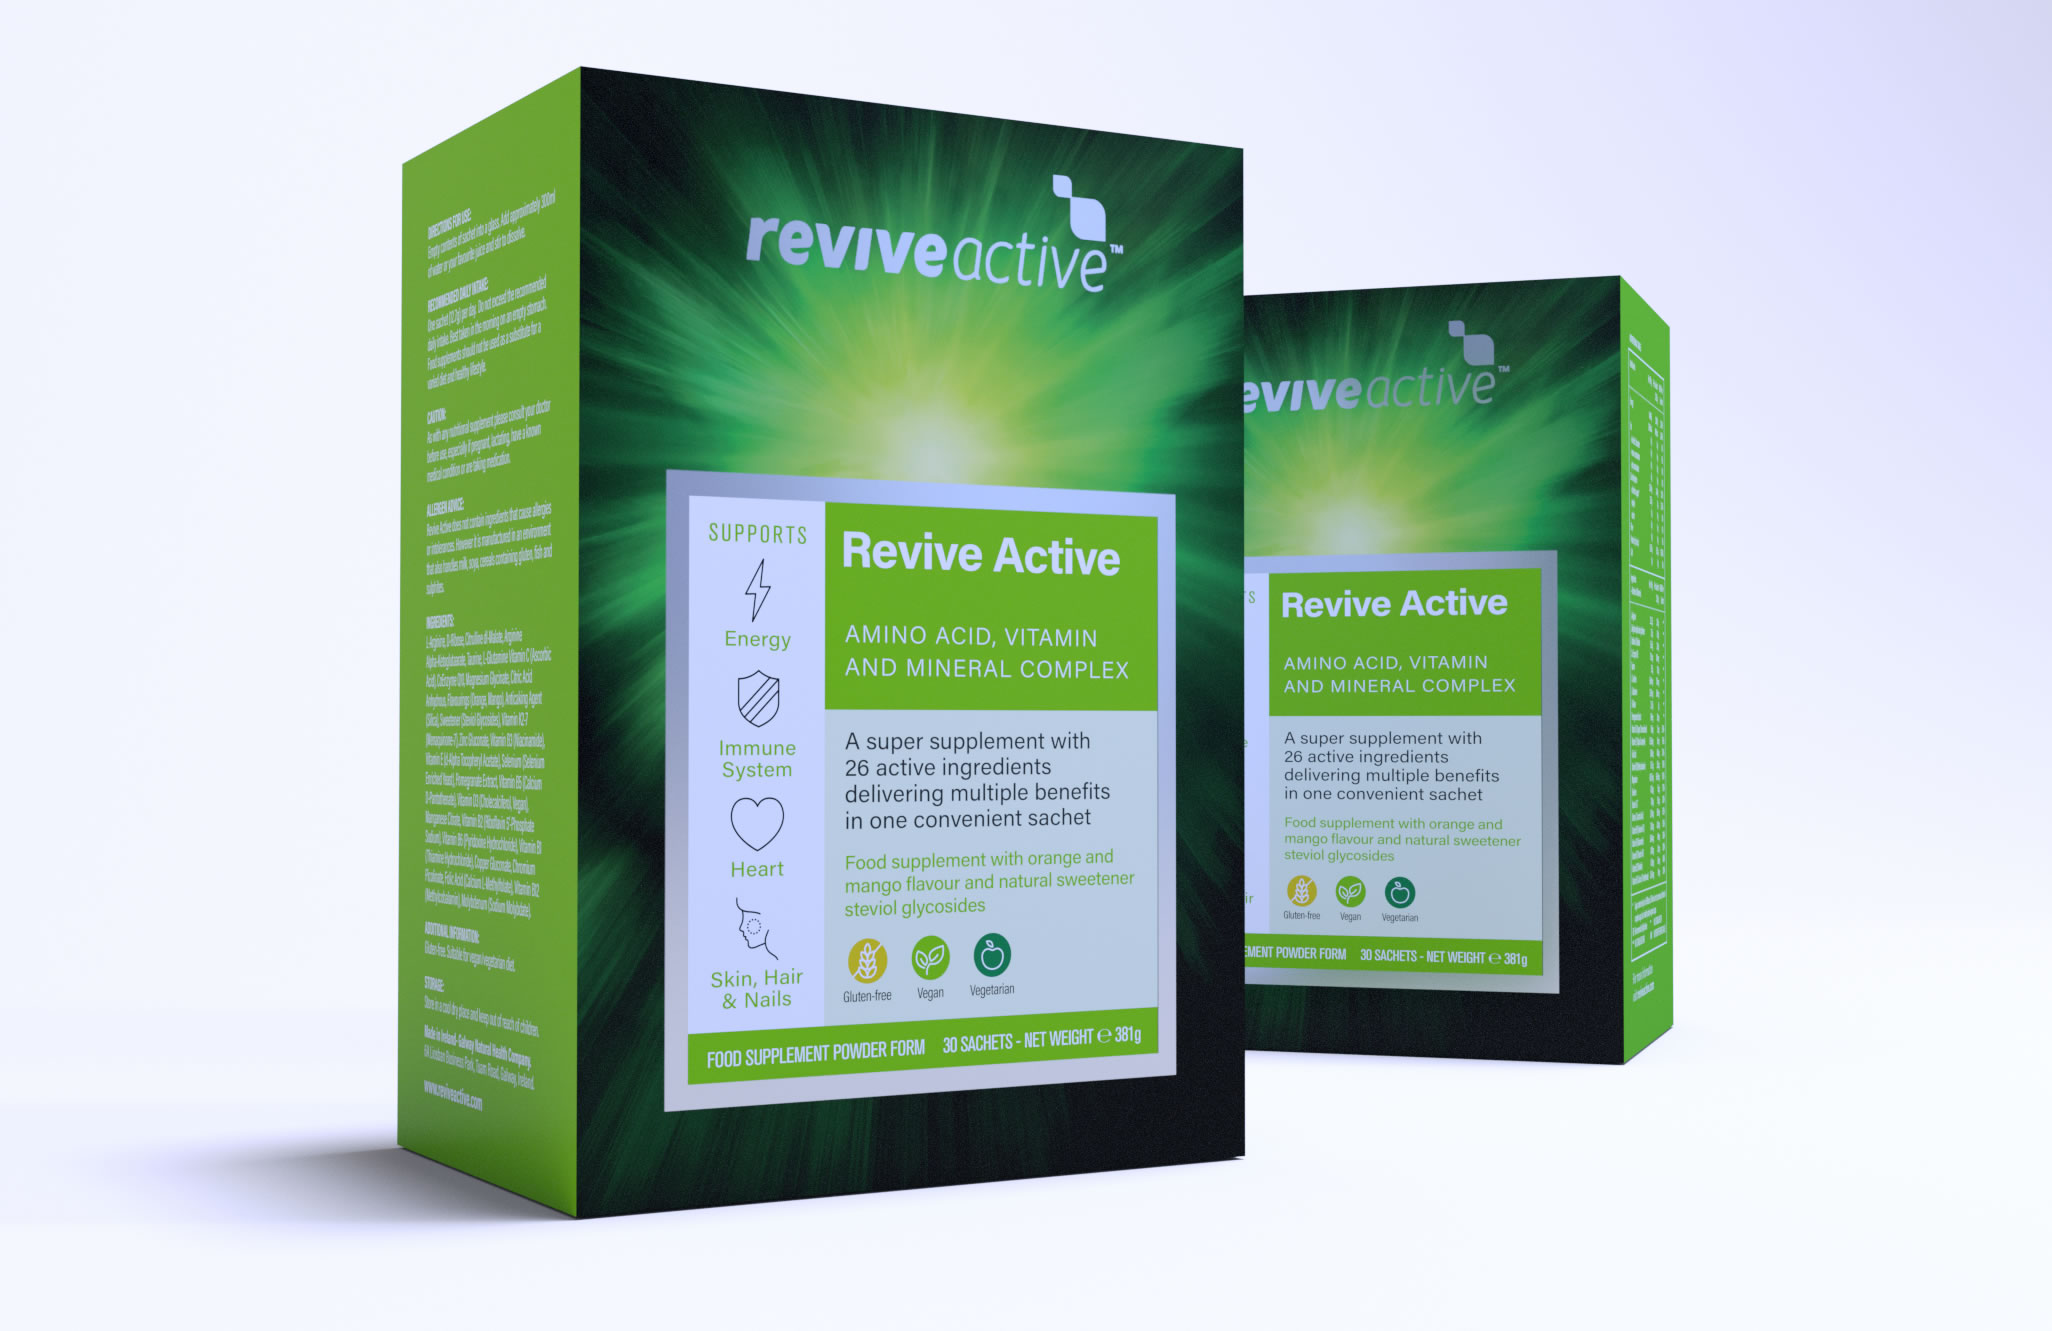 Image of Revive Active Box